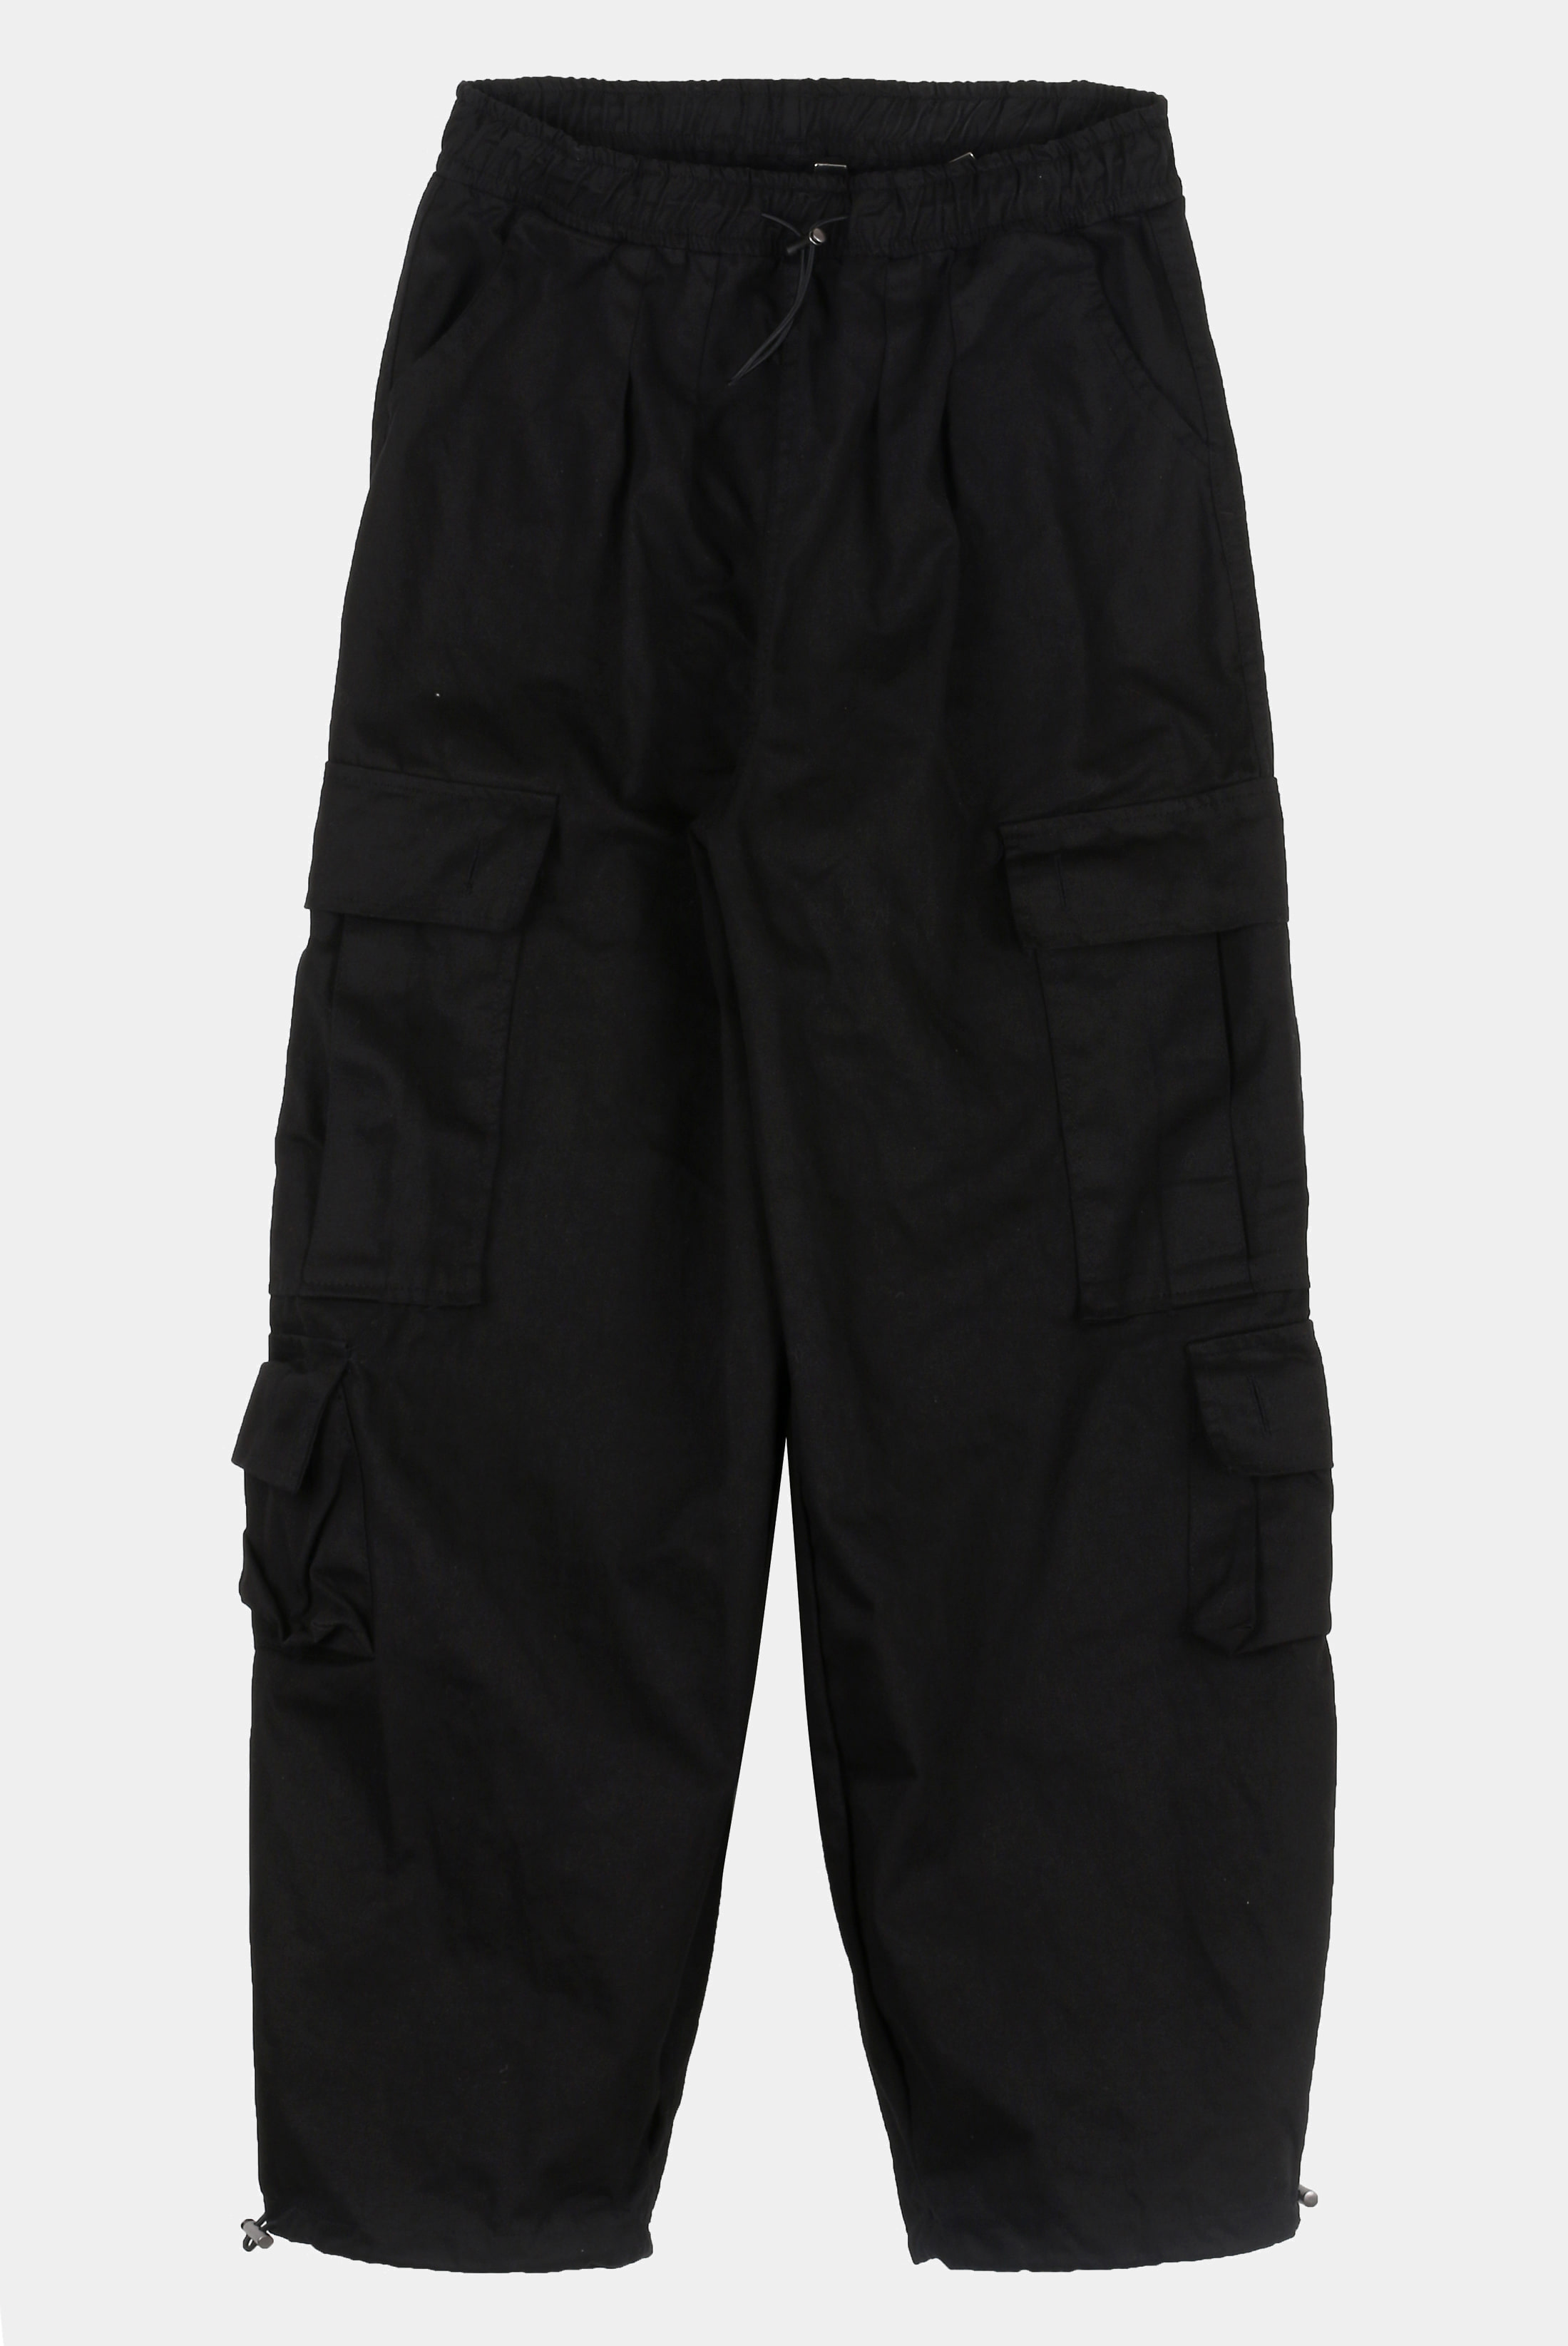 Two_Poket String Cargo_pants